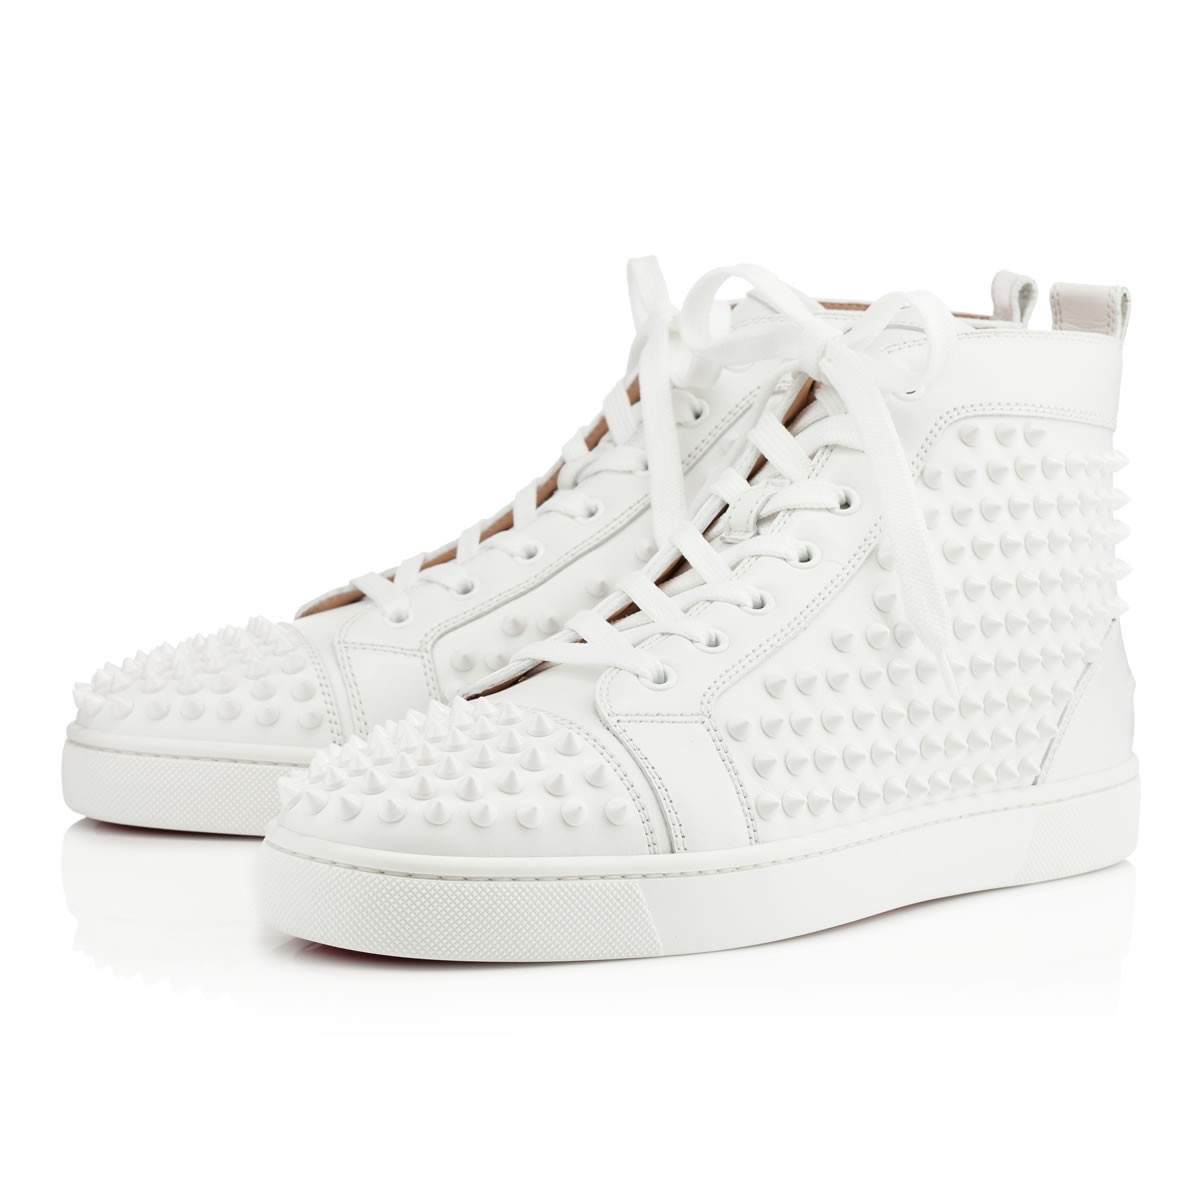 bd0c75e504d6 Louis Spikes Men s Flat White White Leather - Men Shoes - Christian  Louboutin